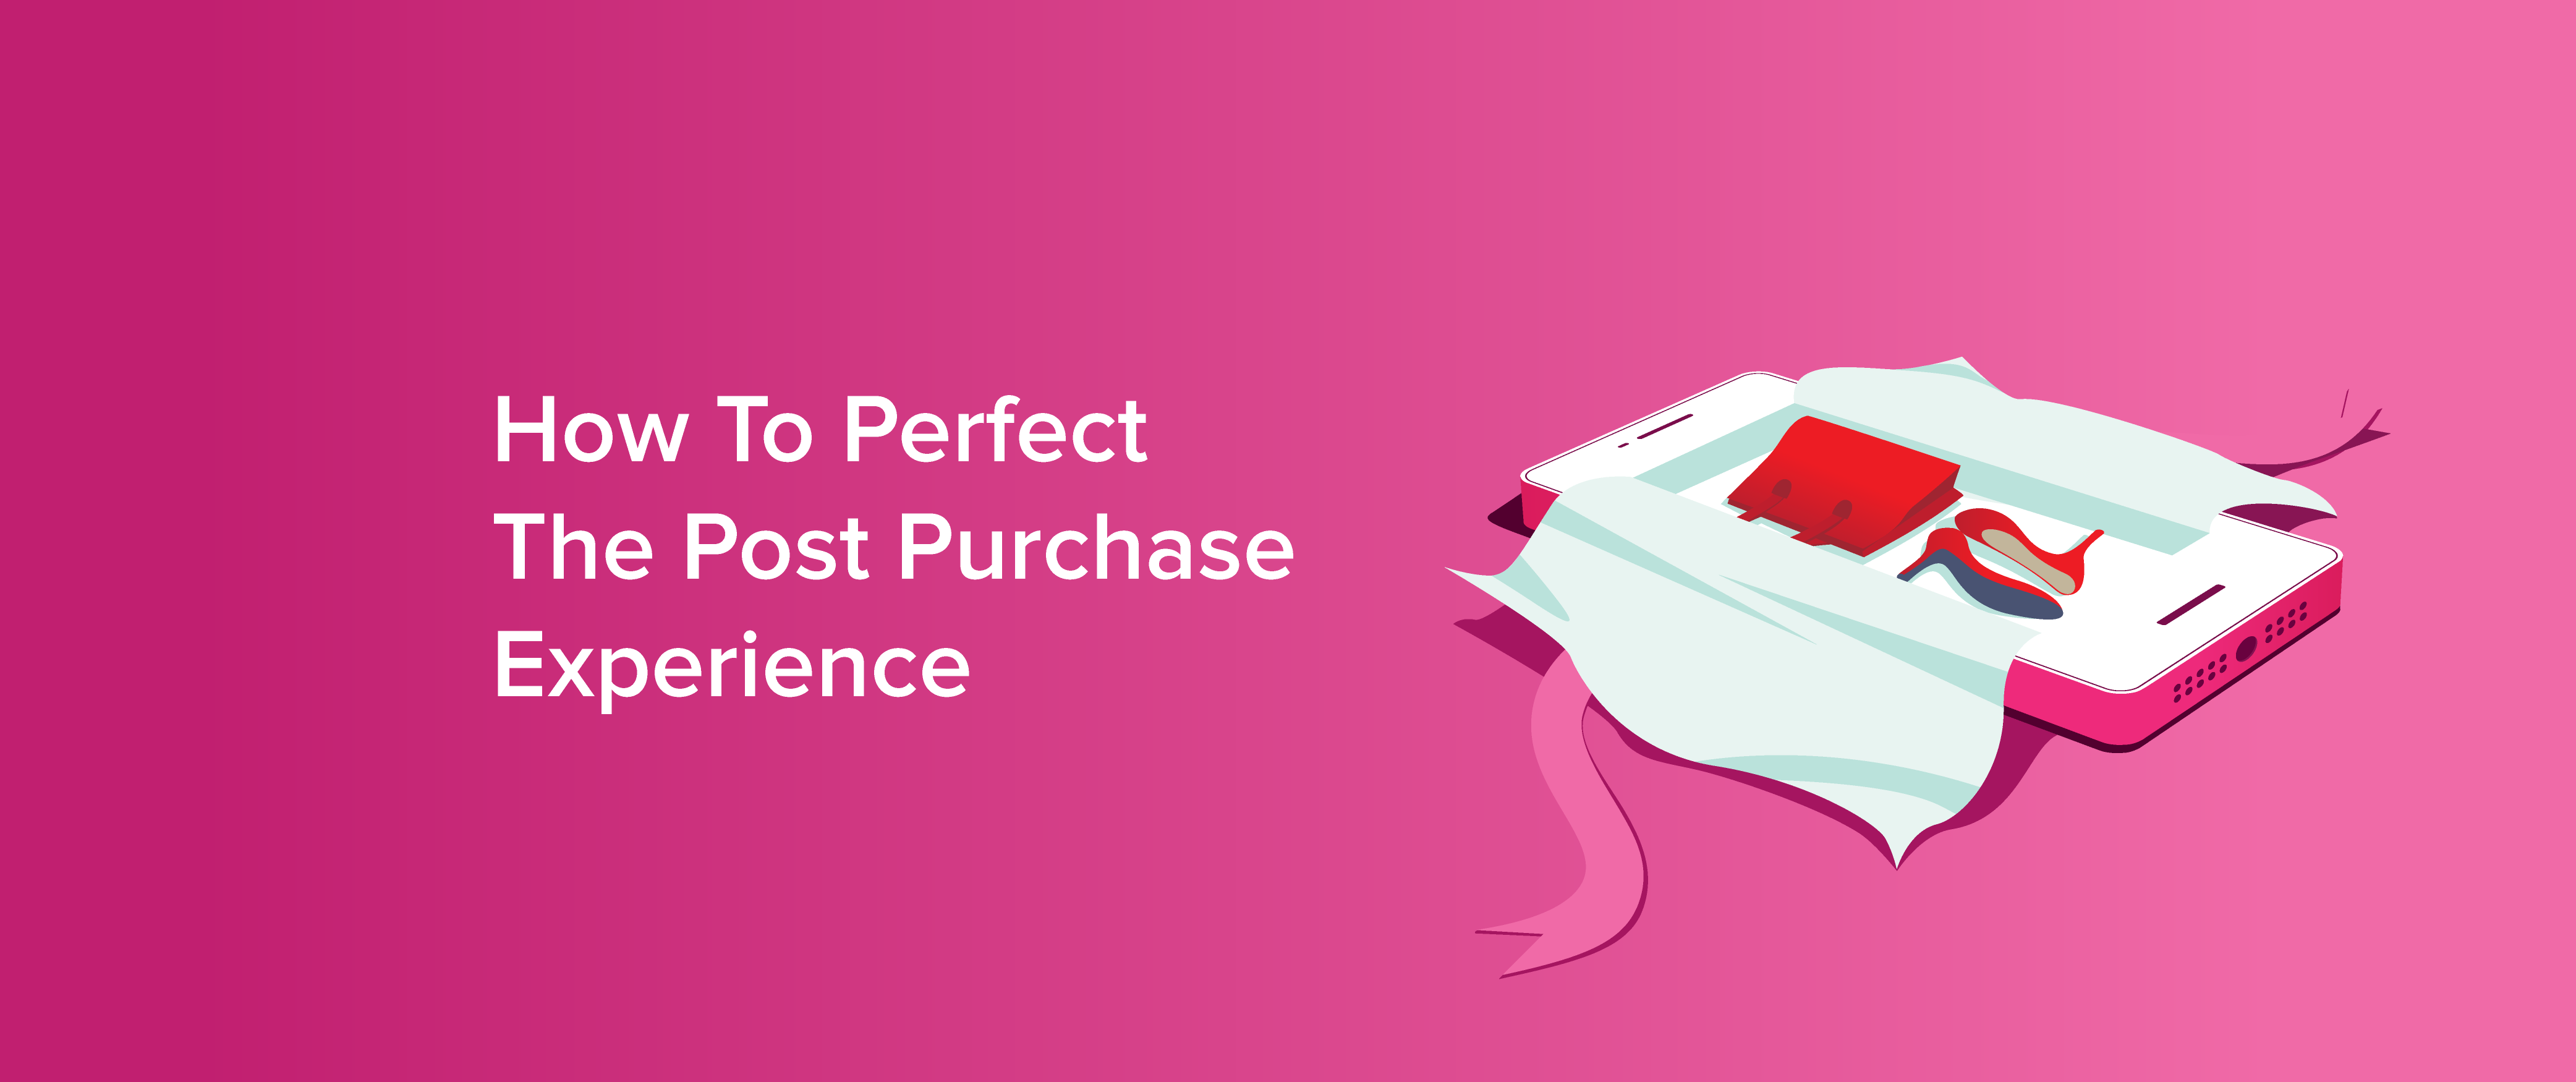 How To Perfect The Post Purchase Experience.png